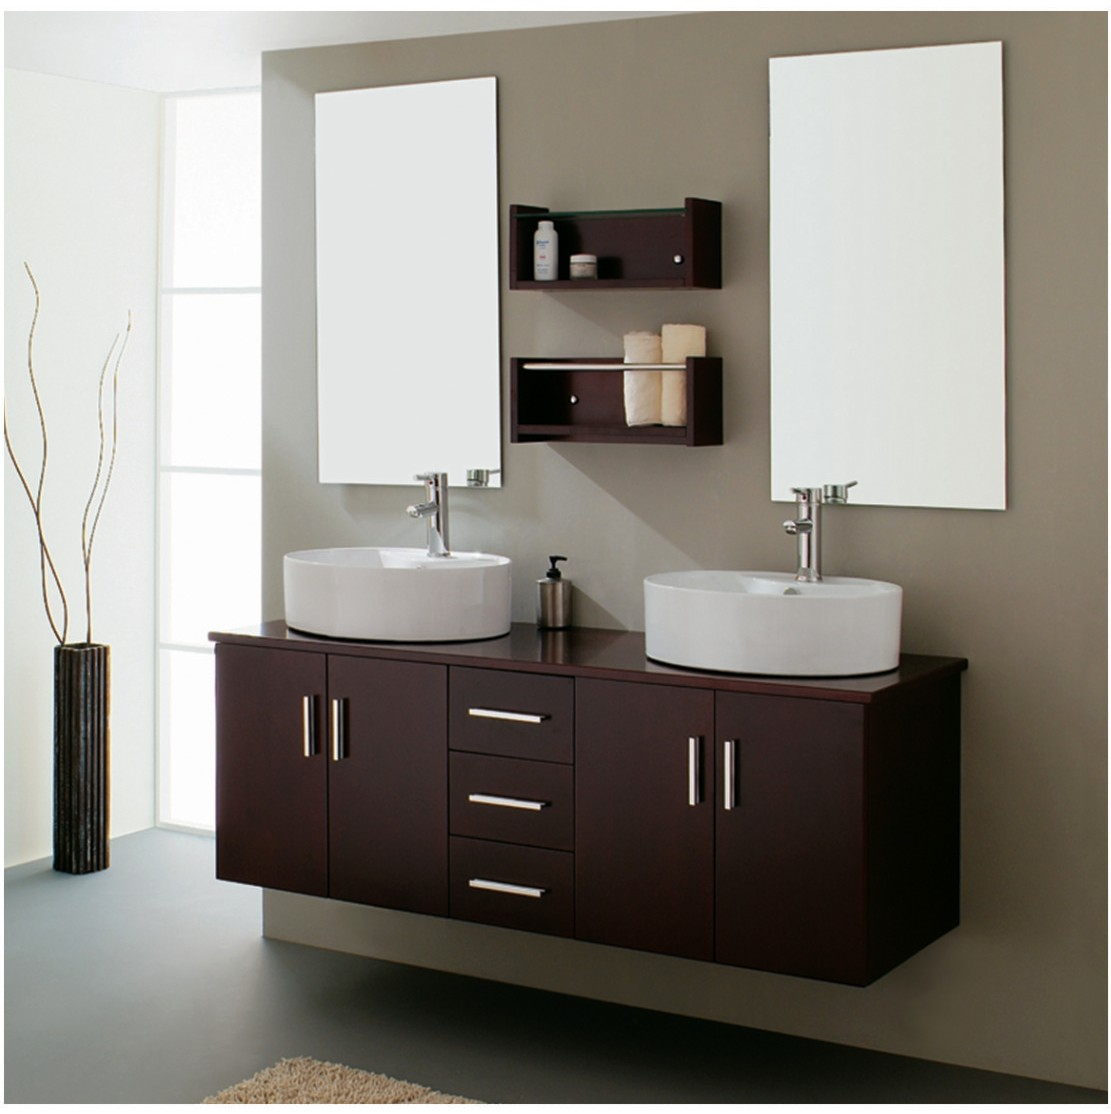 Great Cabinet Designs For Bathrooms. If You Are Searching For Bathroom Cabinets  Designs Then Should Search